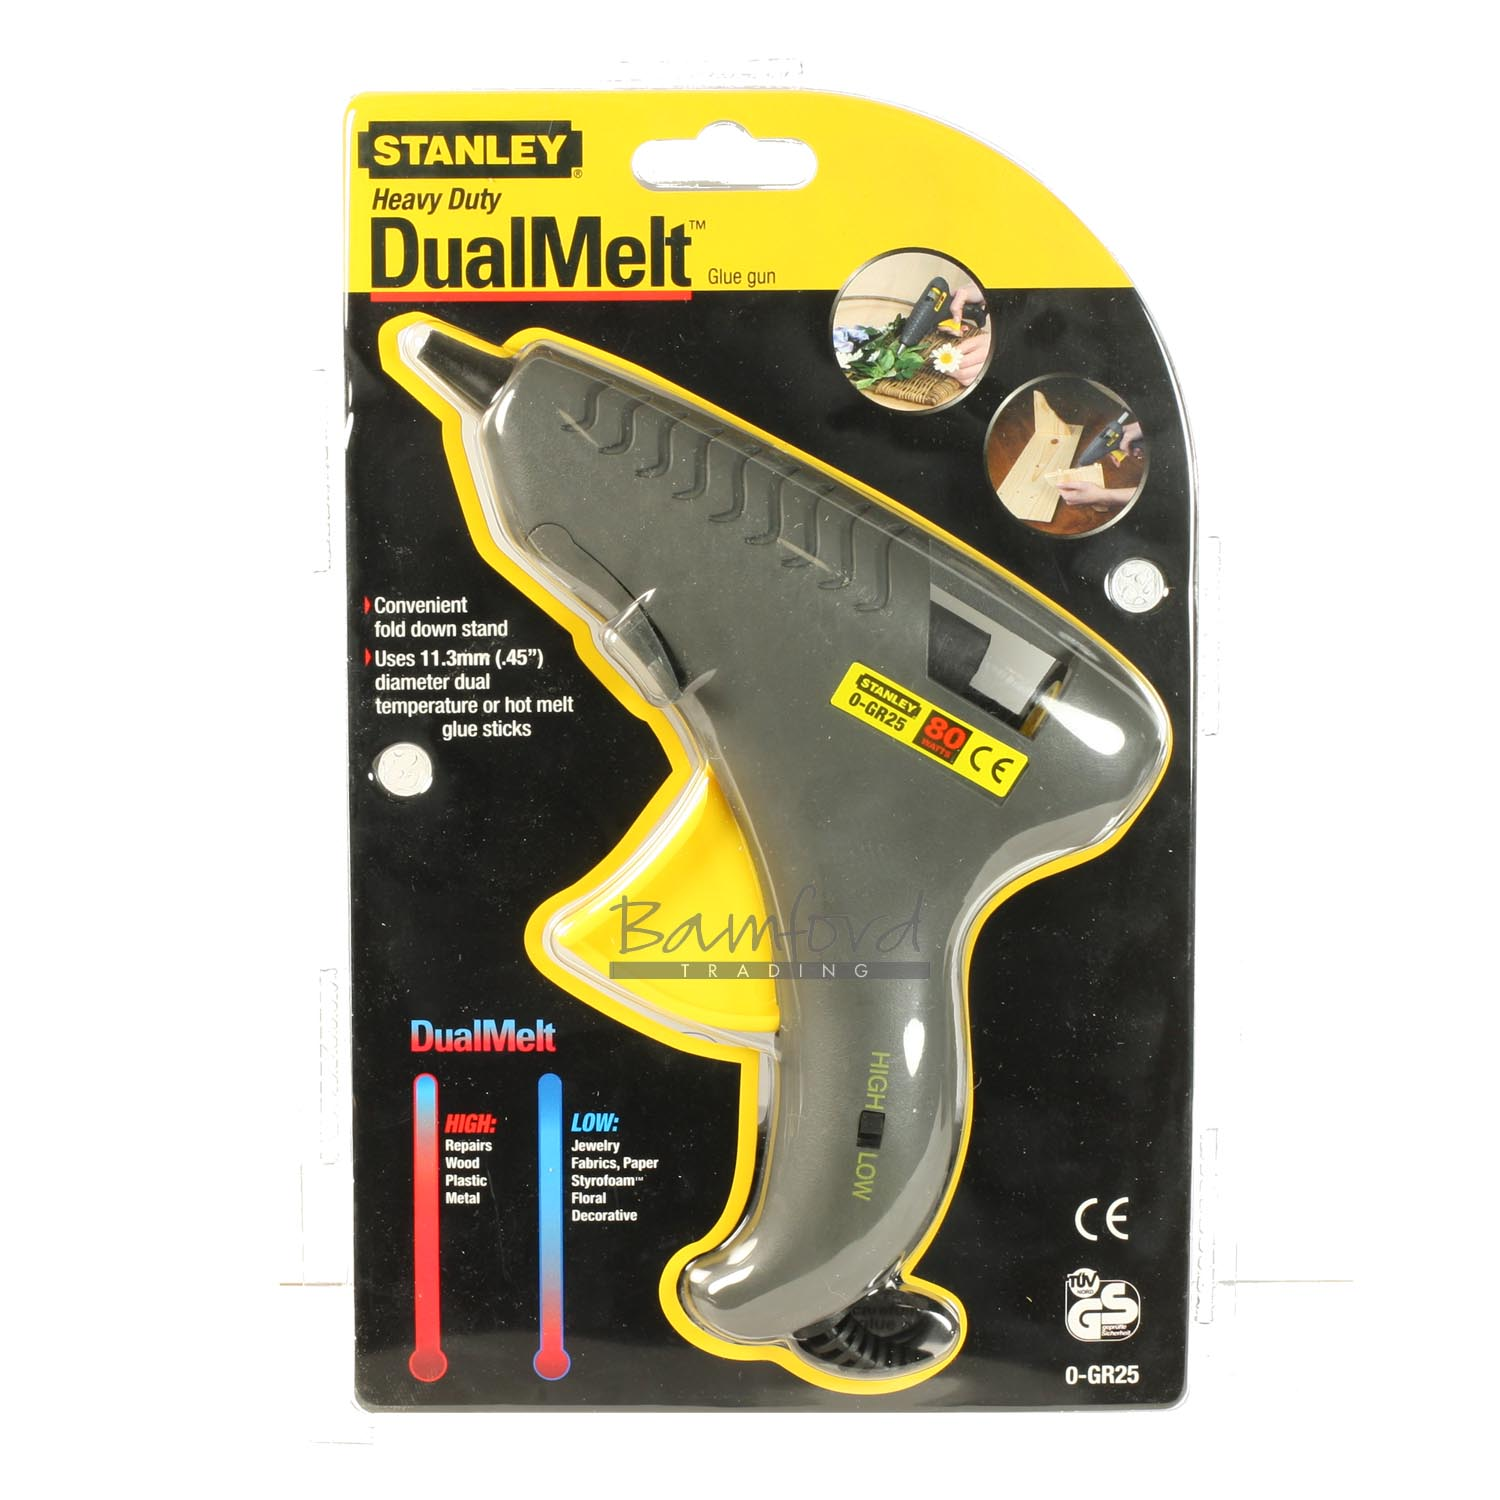 Stanley 0-GR25 230V Heavy-Duty 80W Dual Melt Hot Glue Gun Mains Powered Craft Enlarged Preview